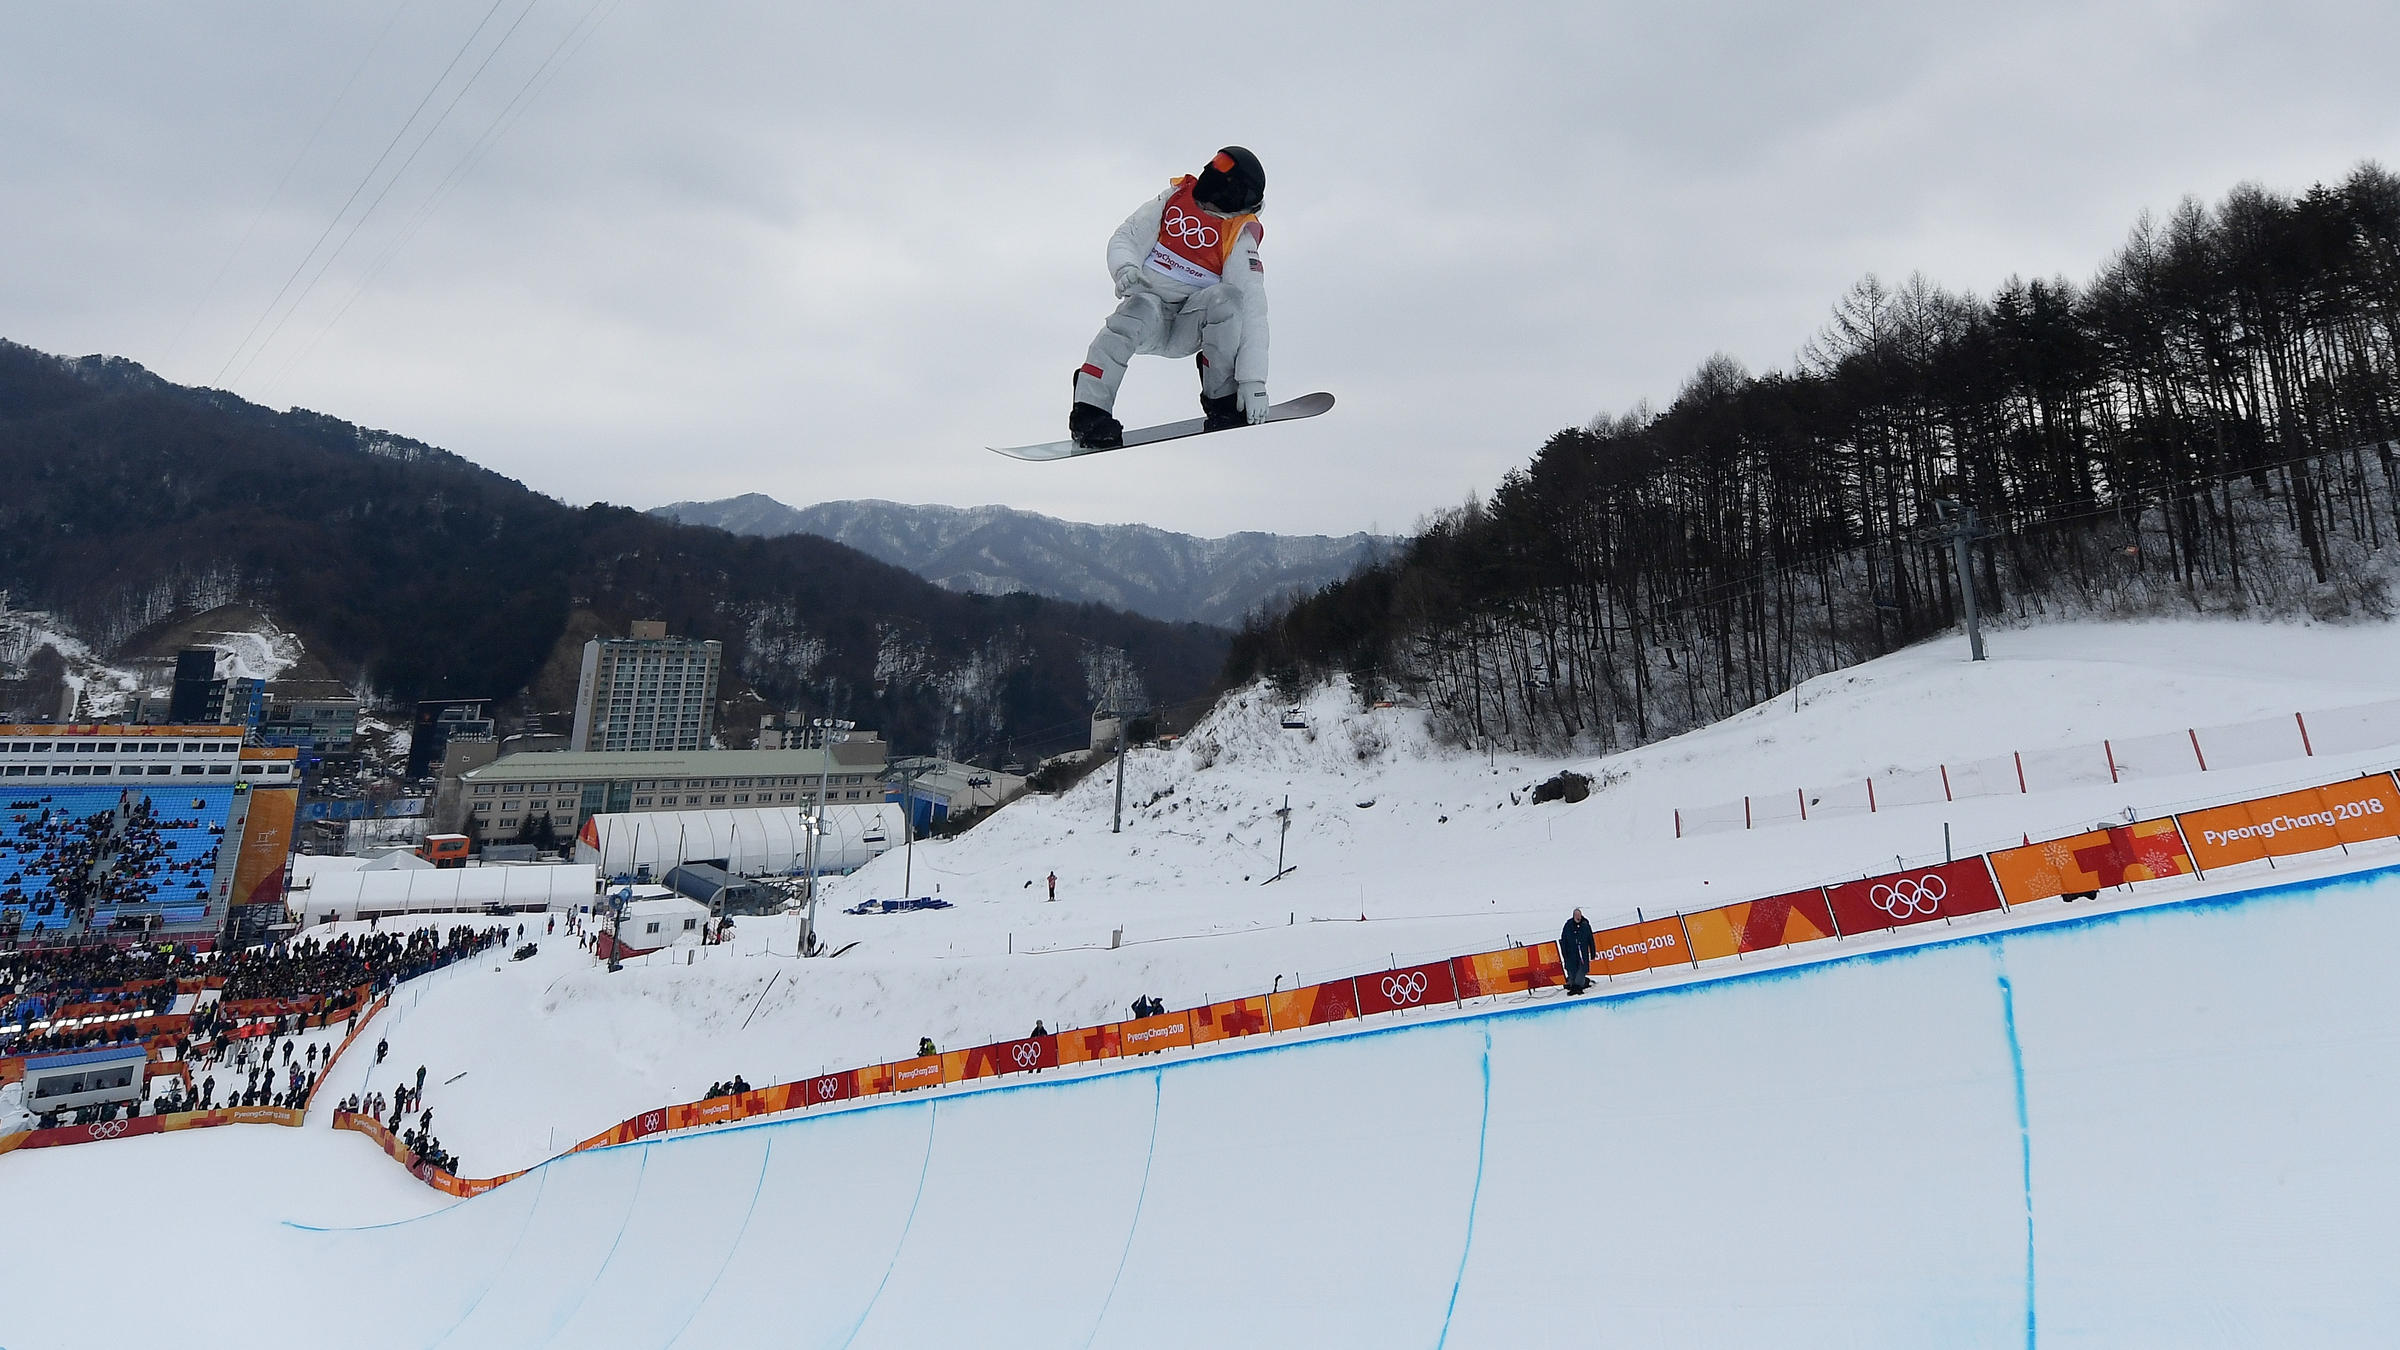 Winter Olympics: Scotty James makes Pyeongchang snowboard halfpipe final